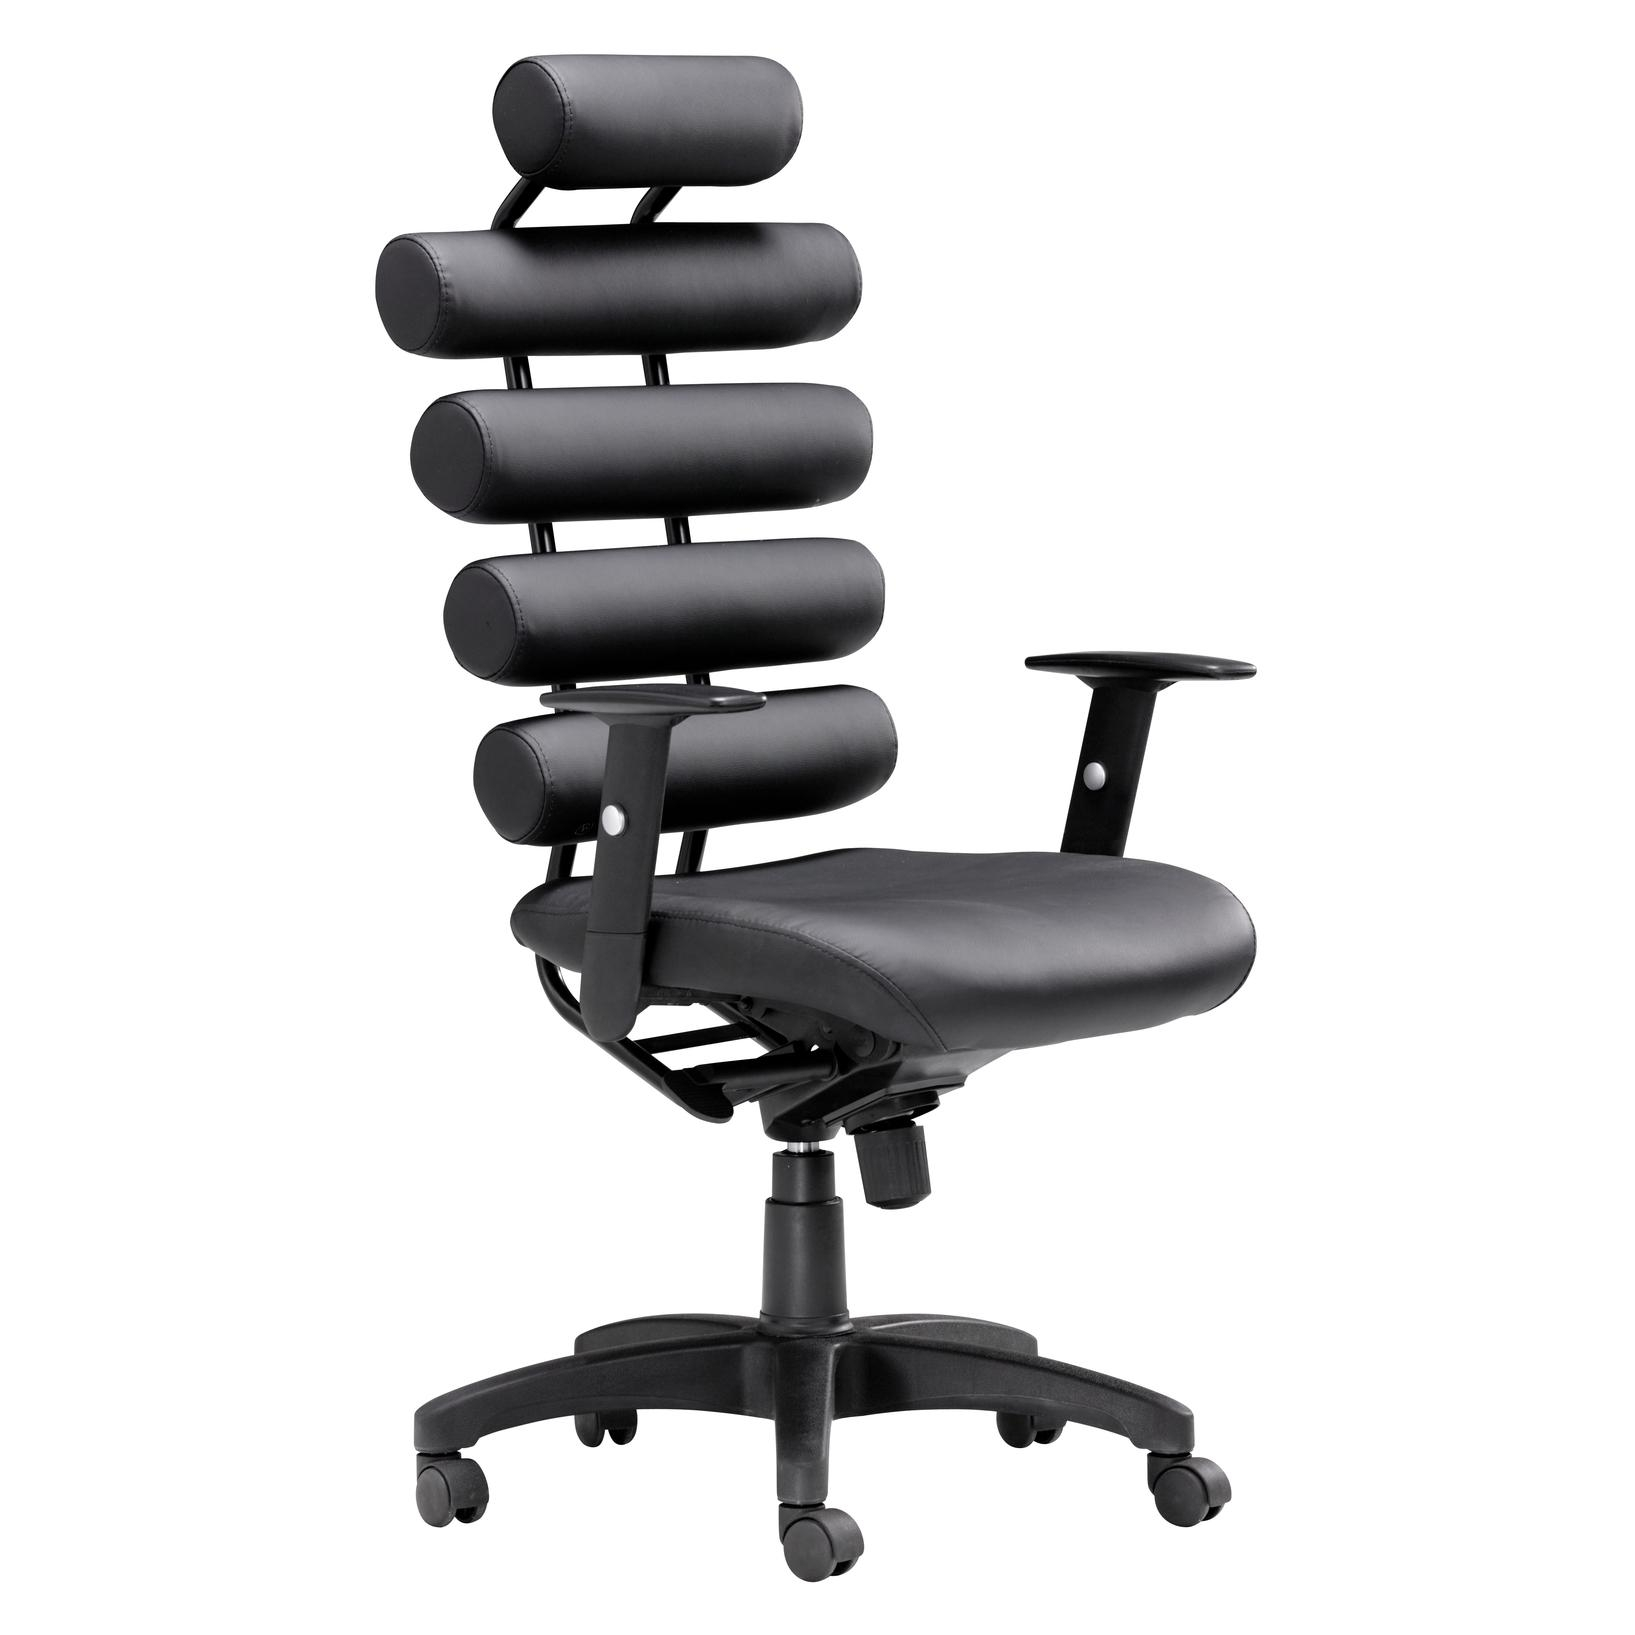 Ergonomic Chair For Home